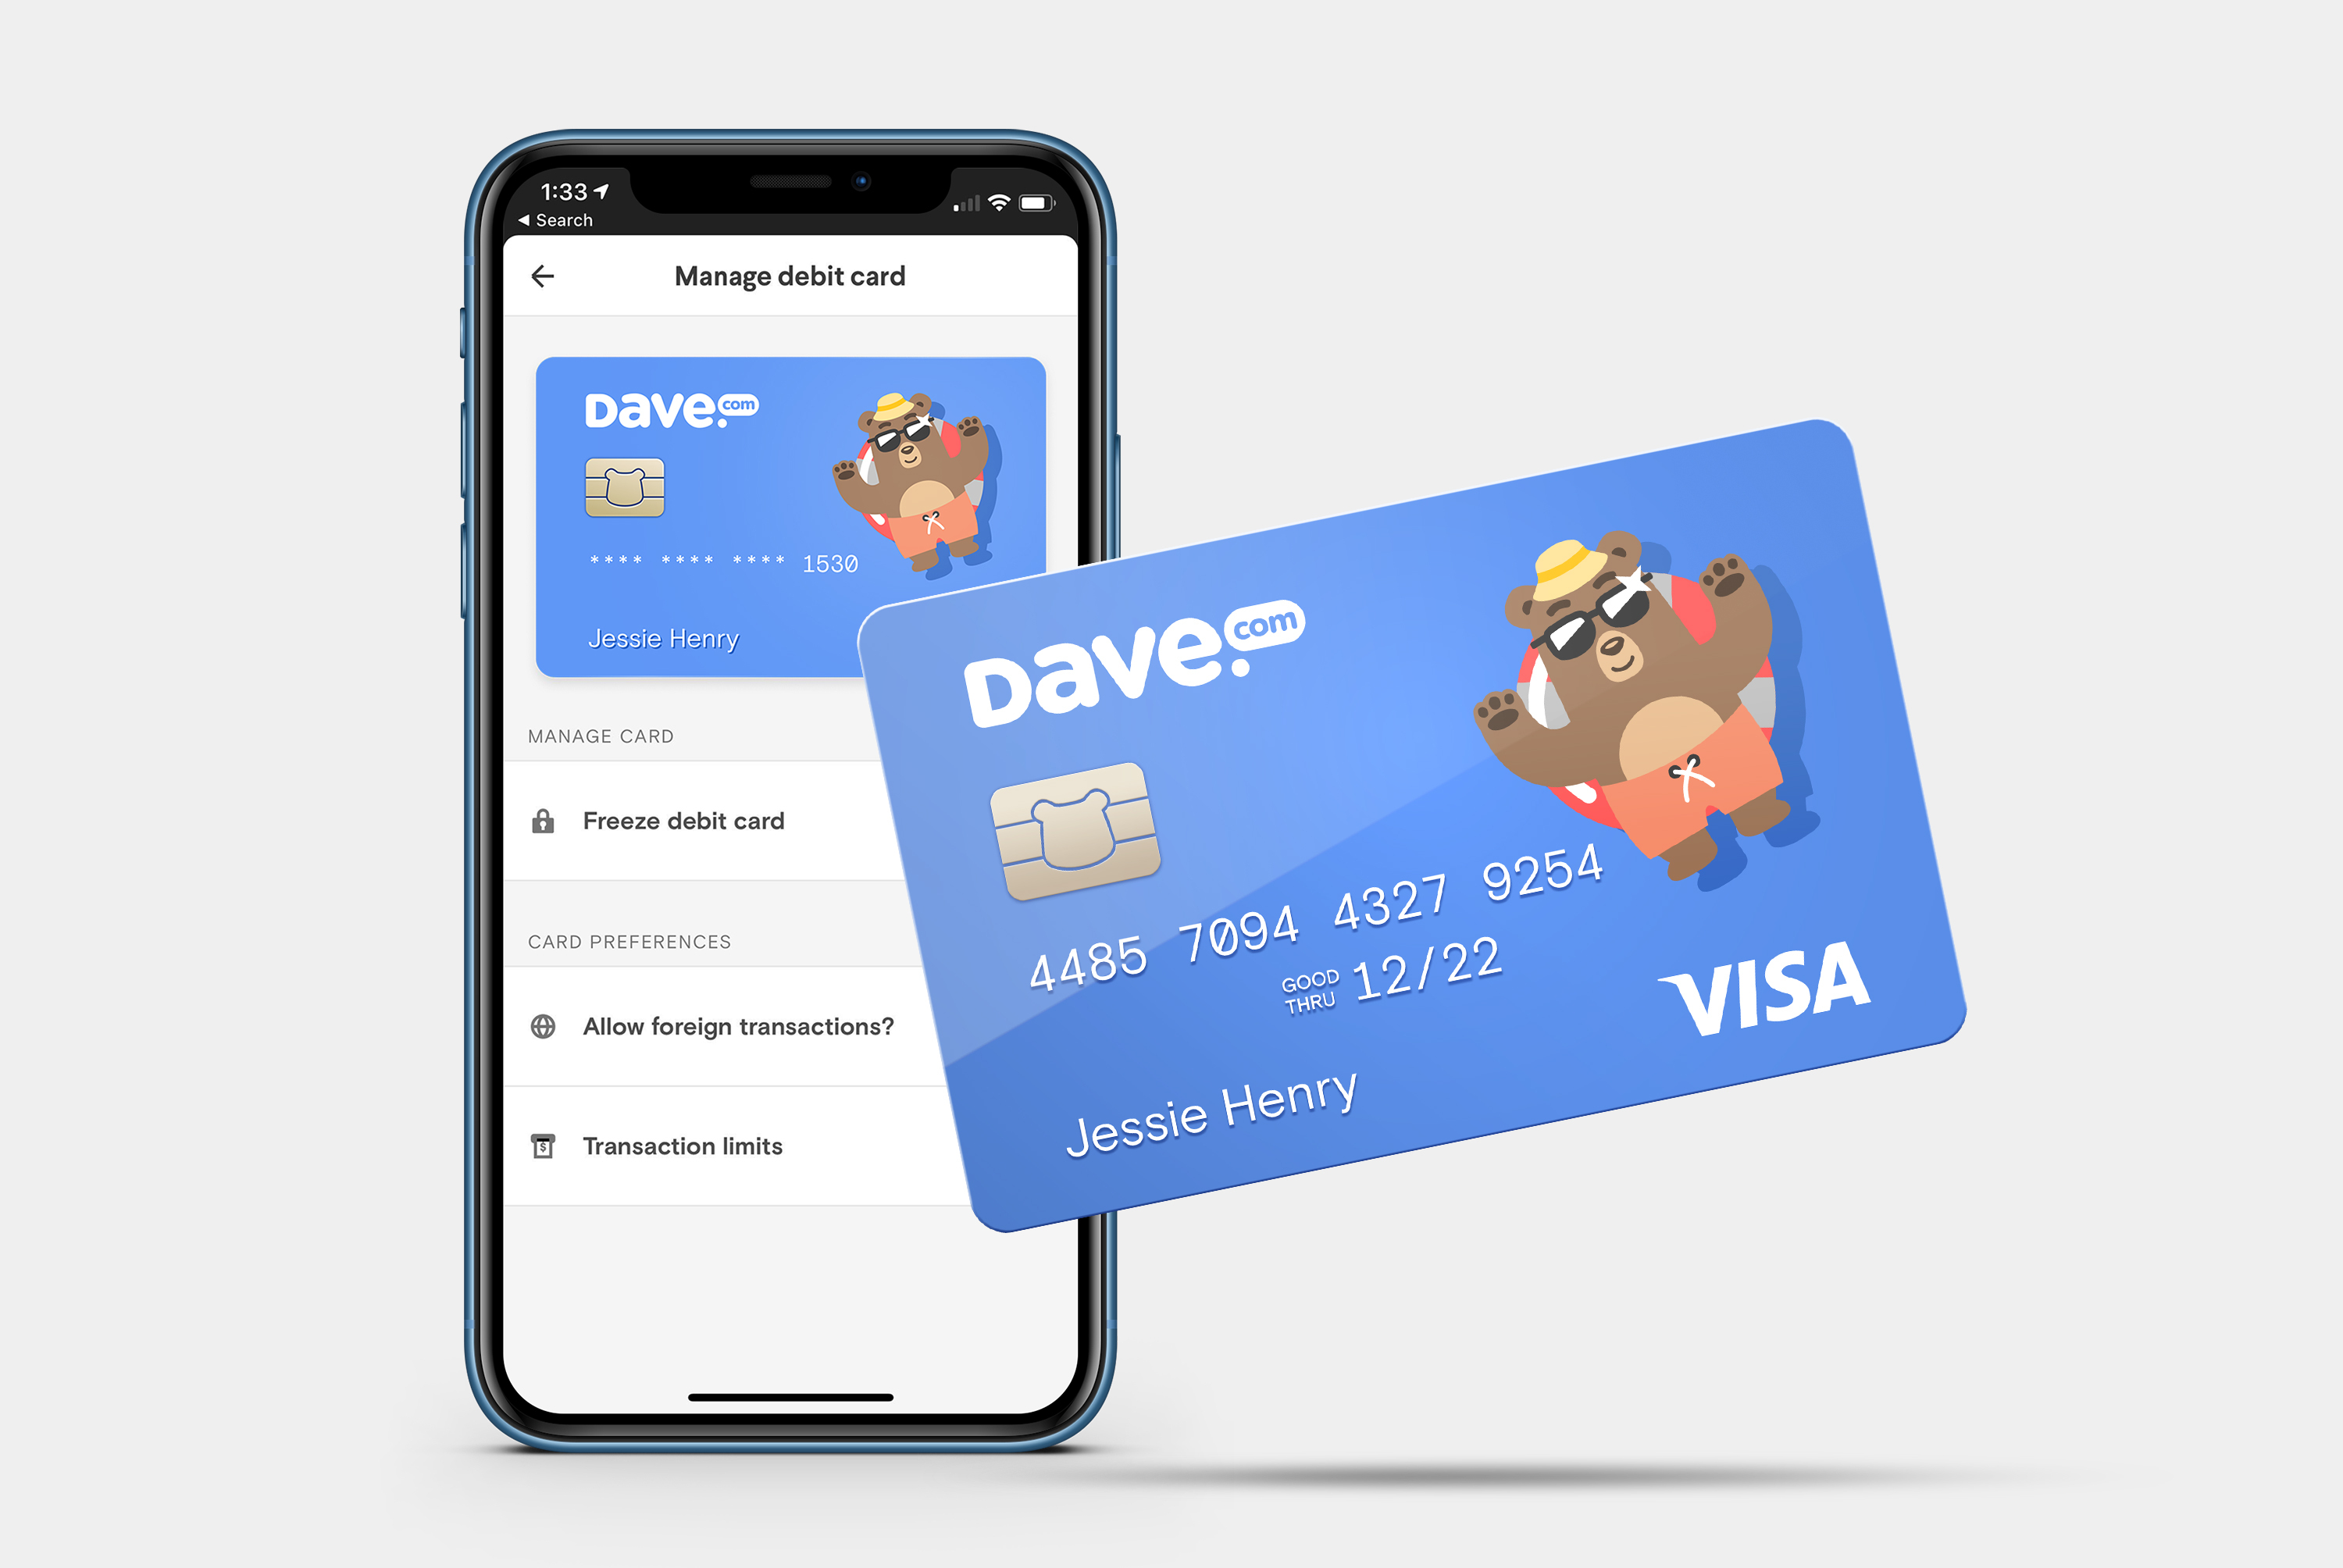 credit card being added to mobile wallet on an iphone.